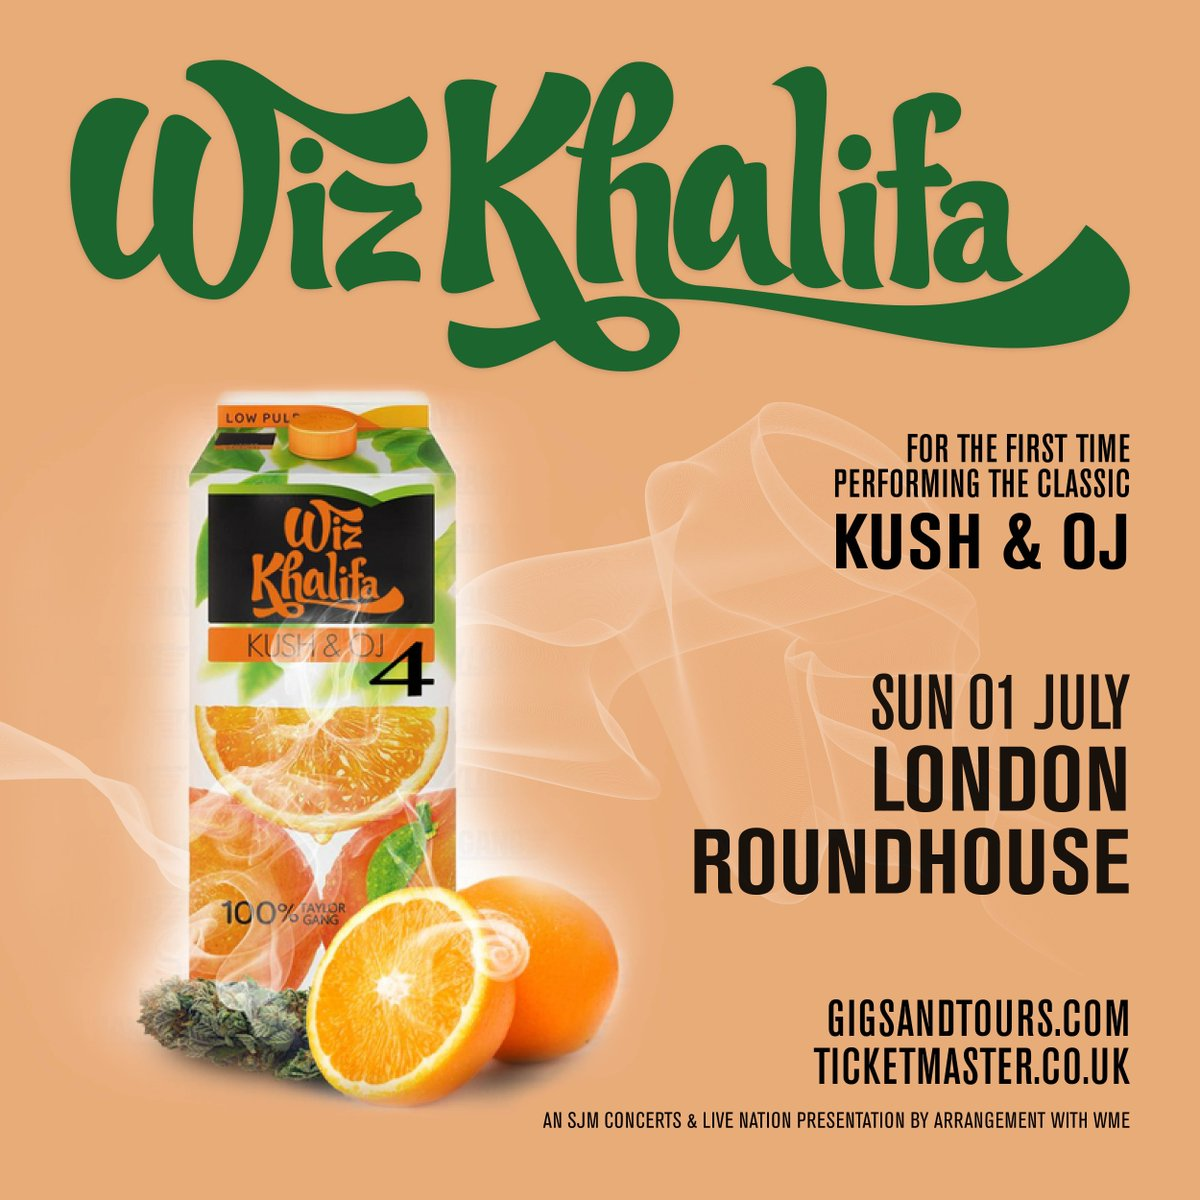 Kush & OJ live💨🍊July 1st at London Roundhouse. https://t.co/mvththdC6n